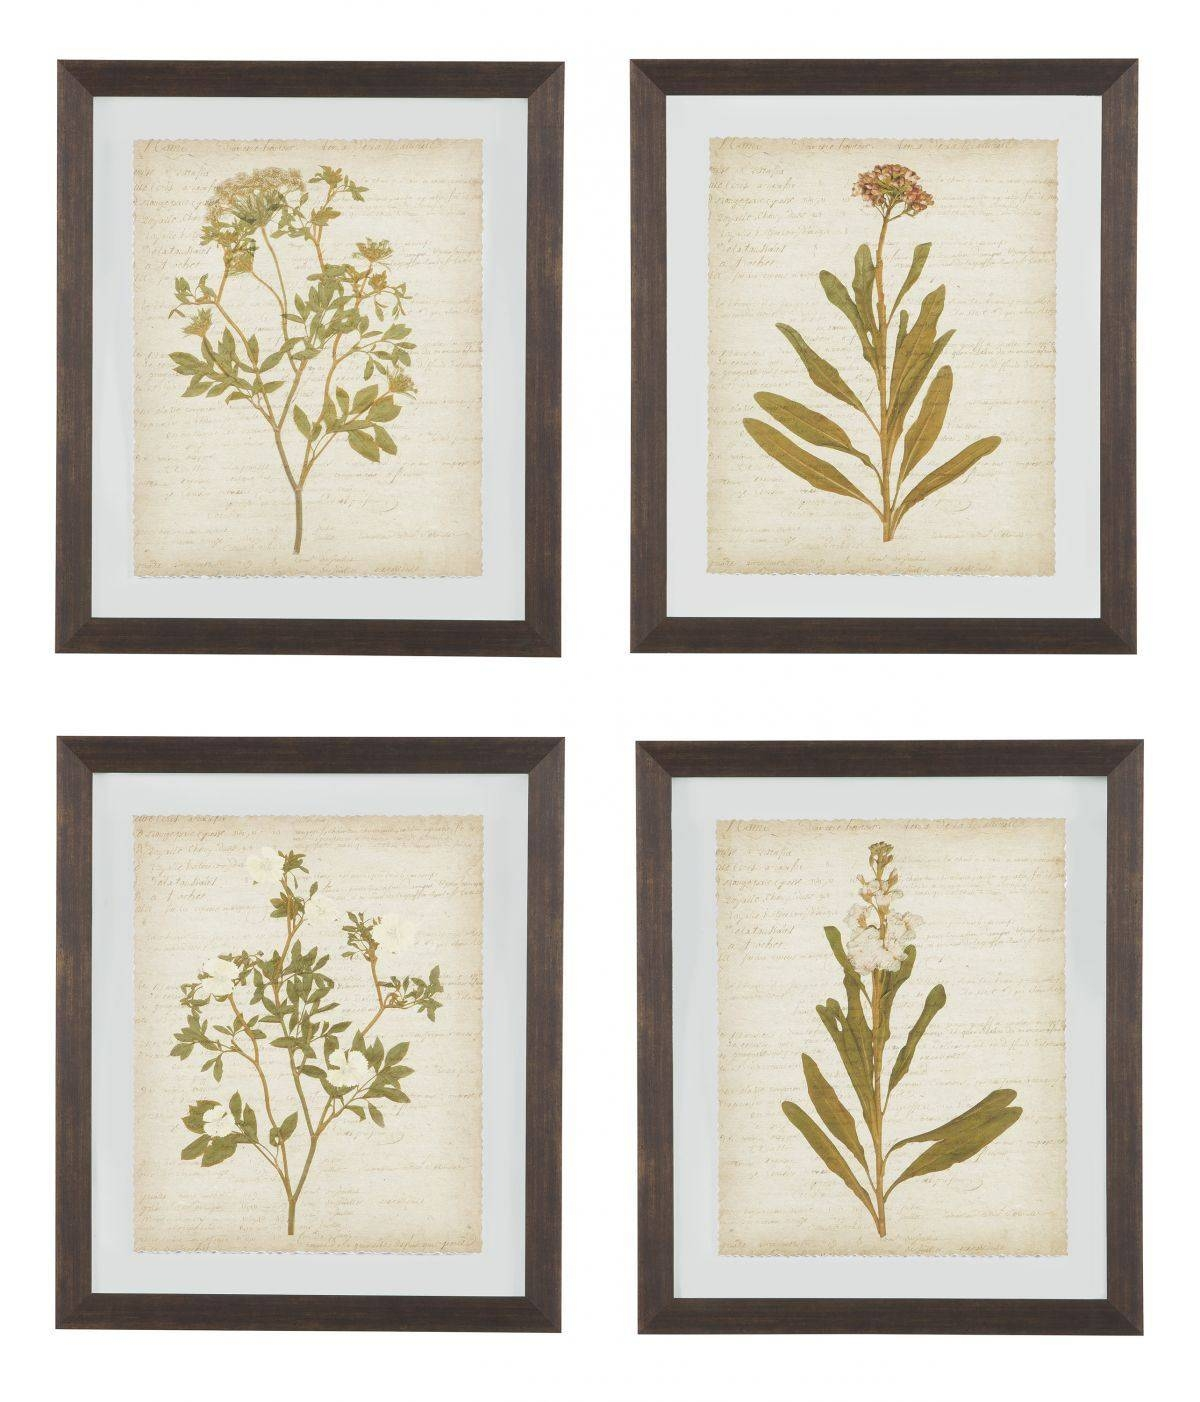 Dyani 4 Piece Wall Art Set Inside Latest 4 Piece Wall Art Sets (View 11 of 20)